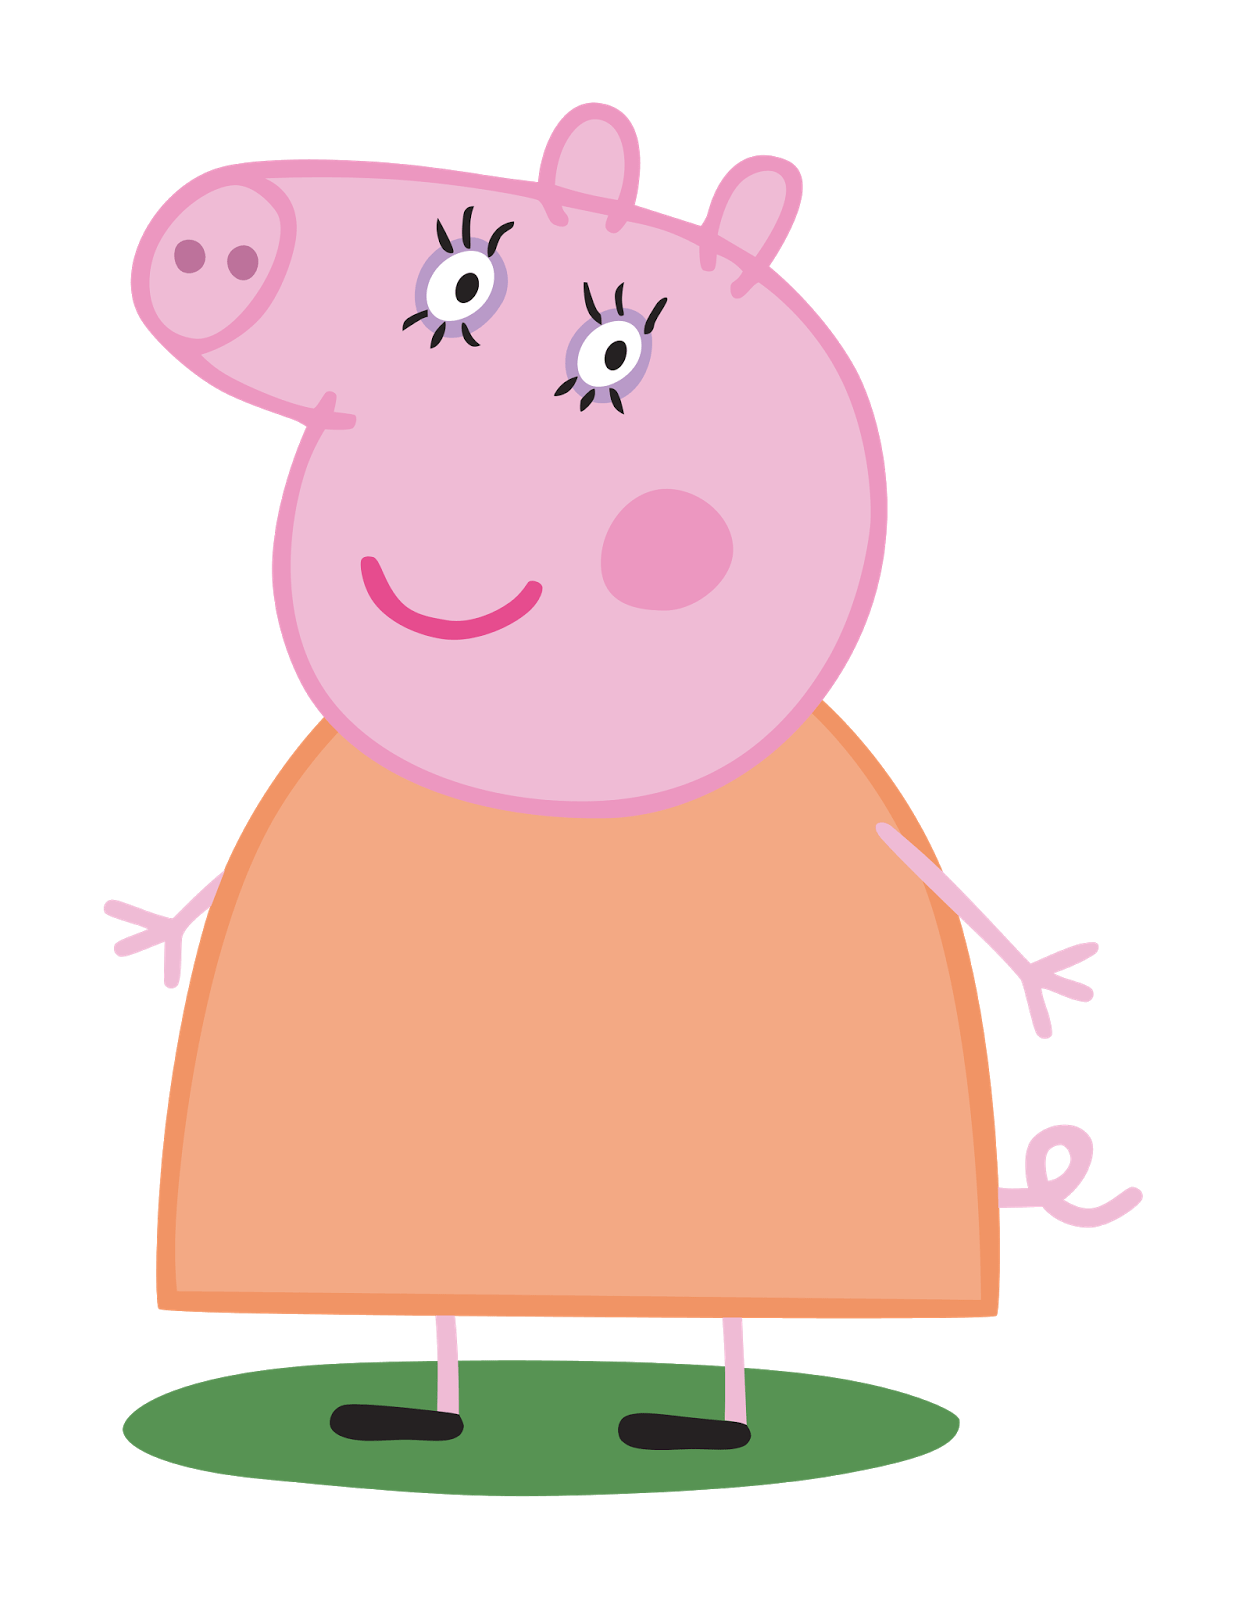 Peppa pig house clipart black and white library Mummy Pig transparent PNG - StickPNG black and white library